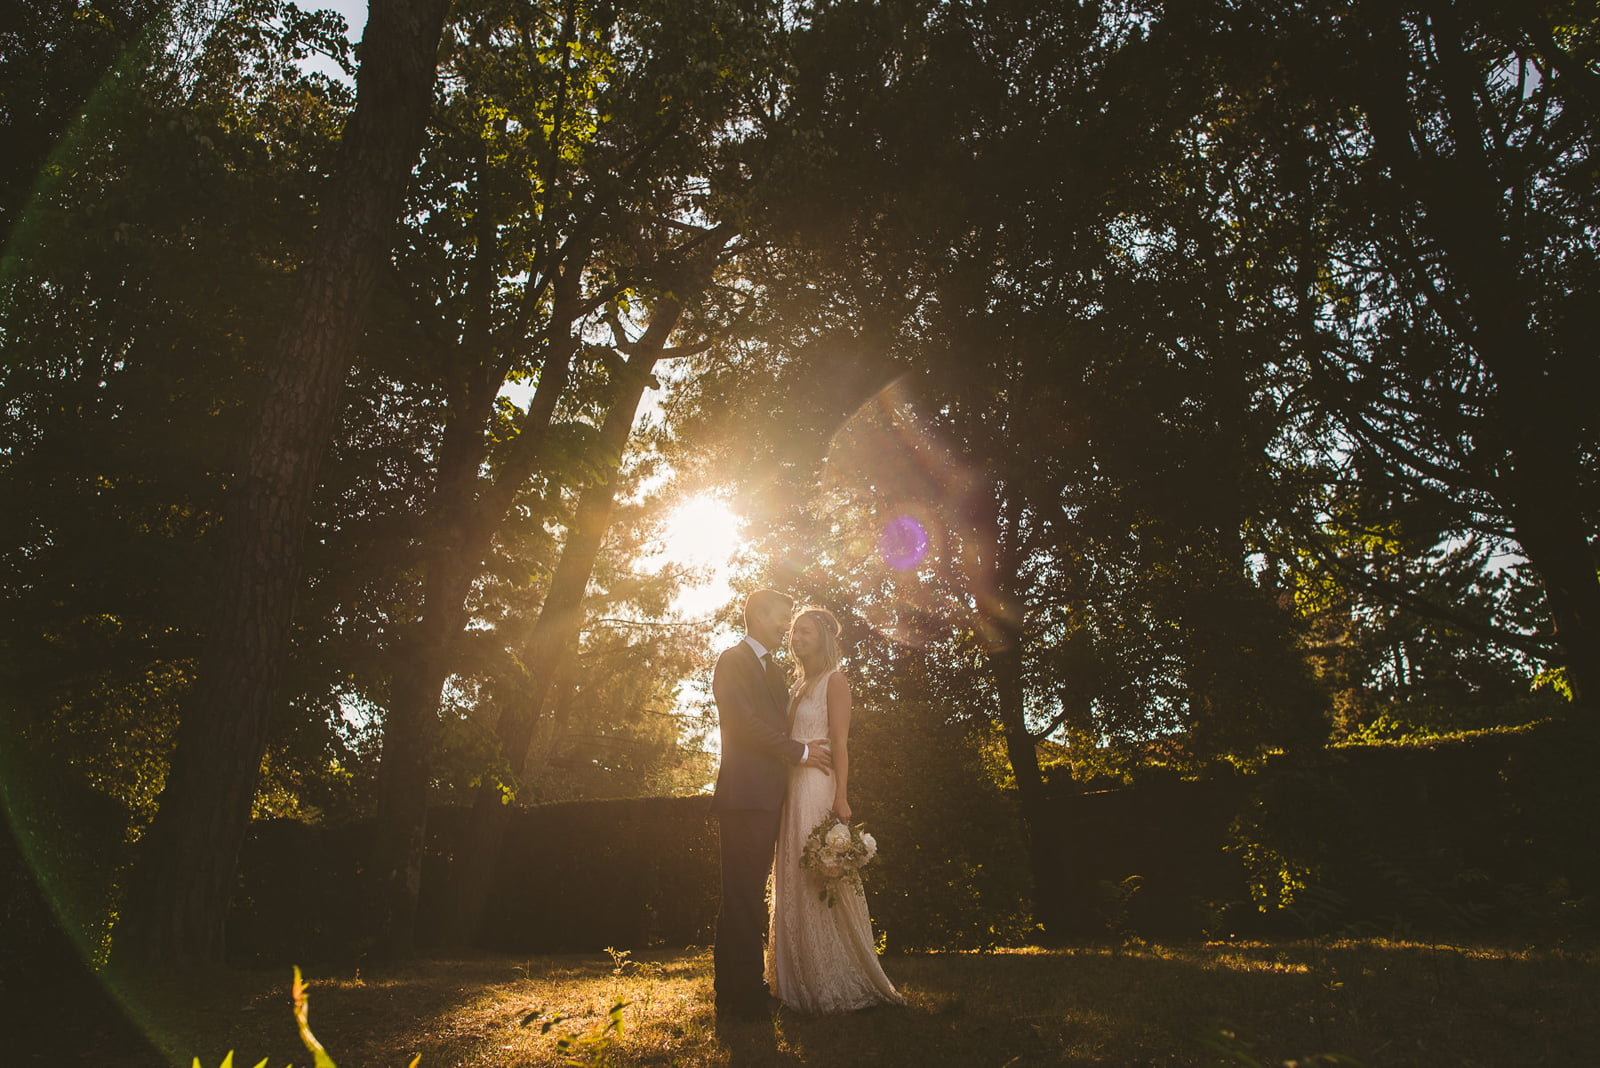 A+L Wedding at Montechiaro, Siena by Federico Pannacci 71